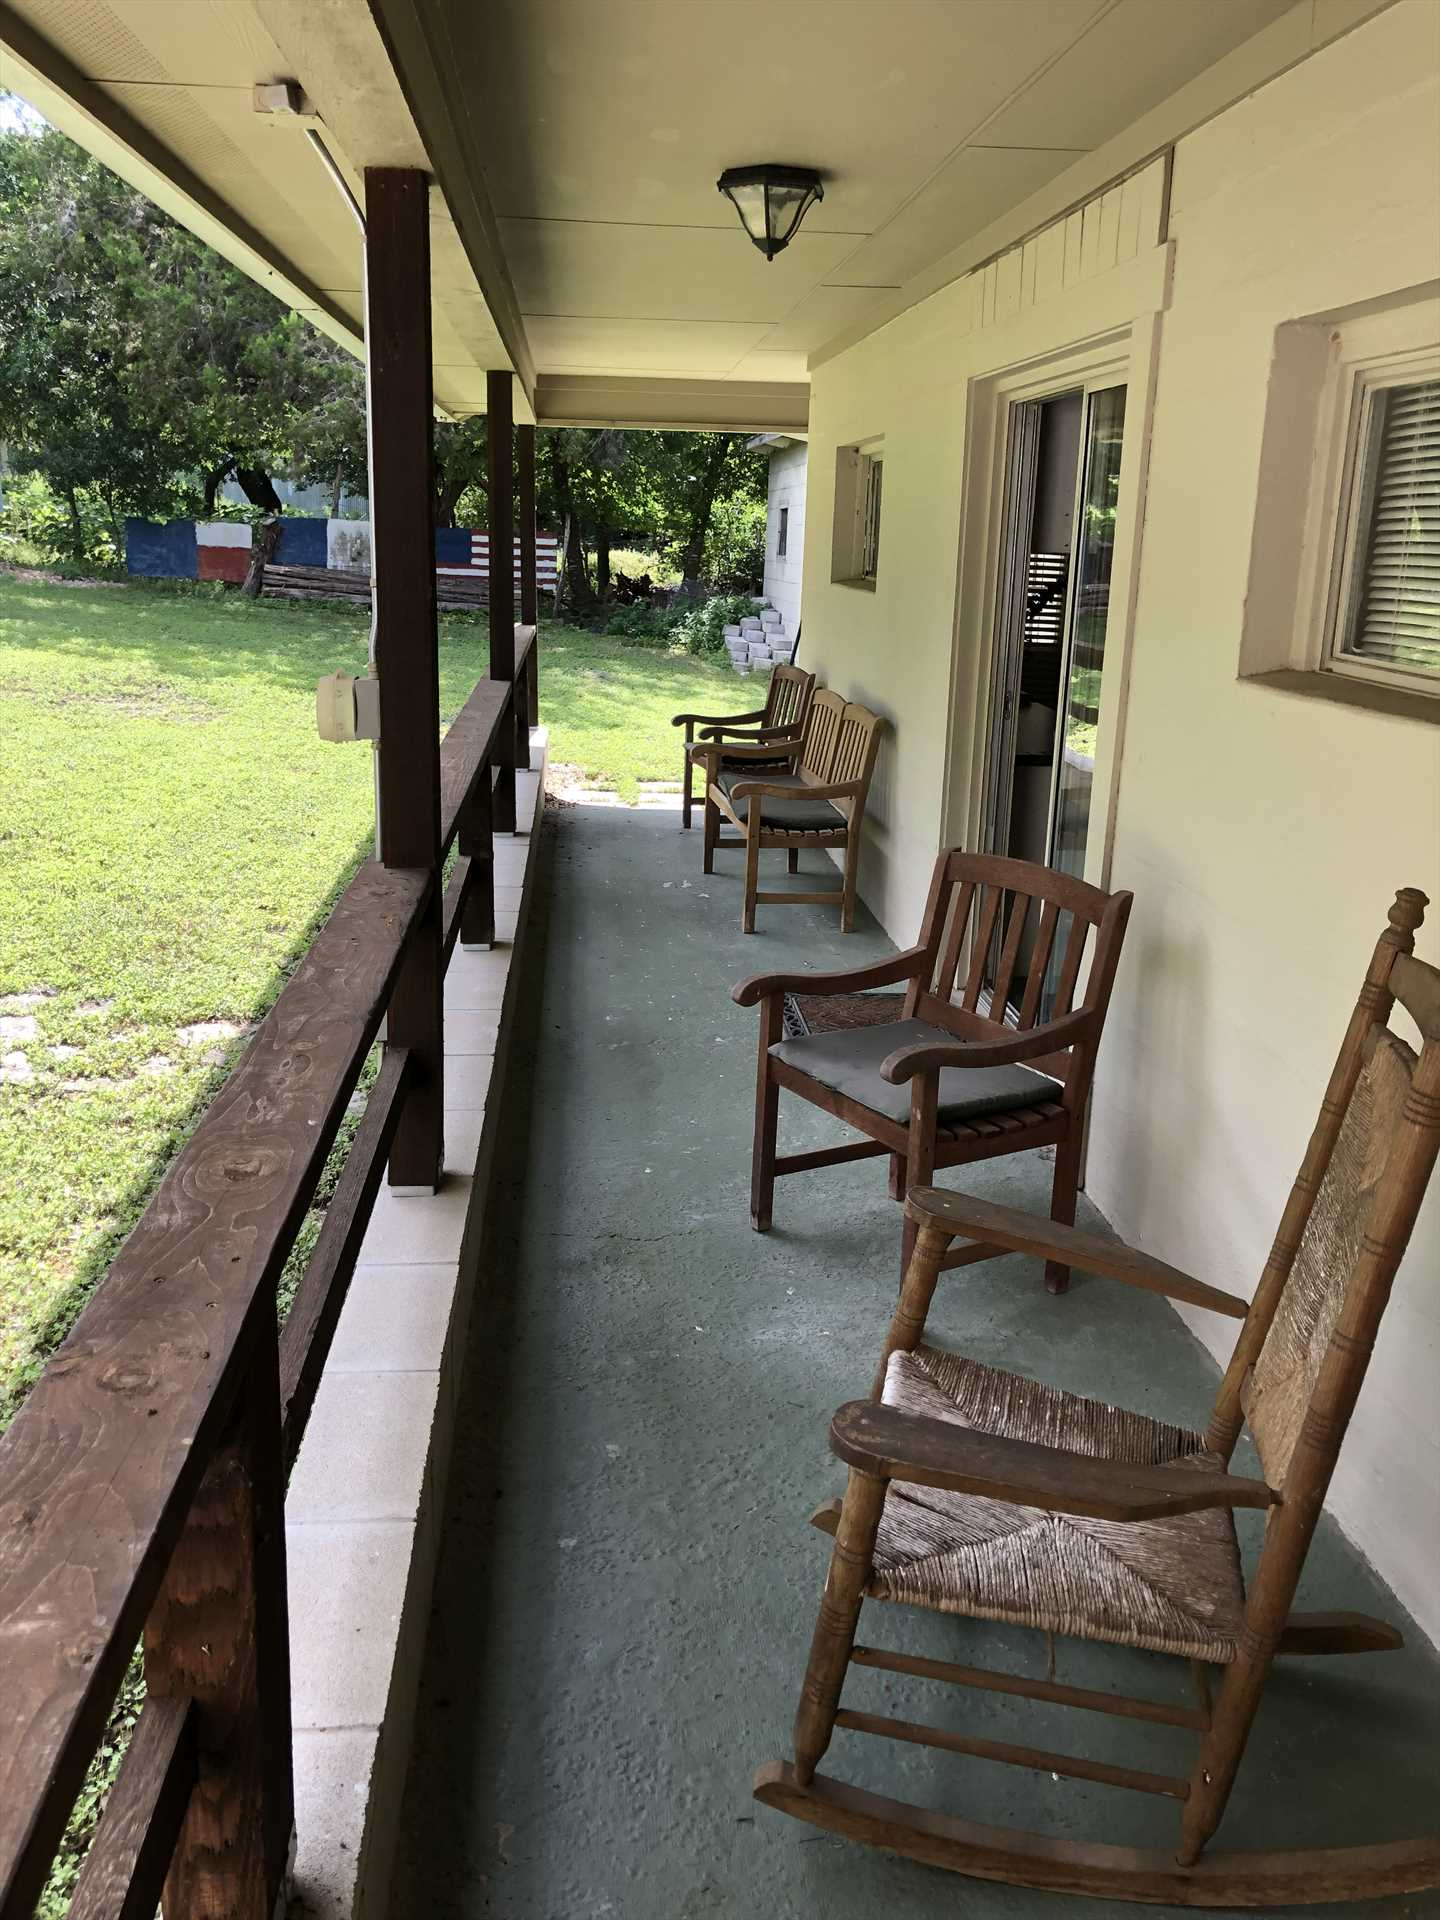 Kick up your feet in relaxing country comfort on the shaded front porch!